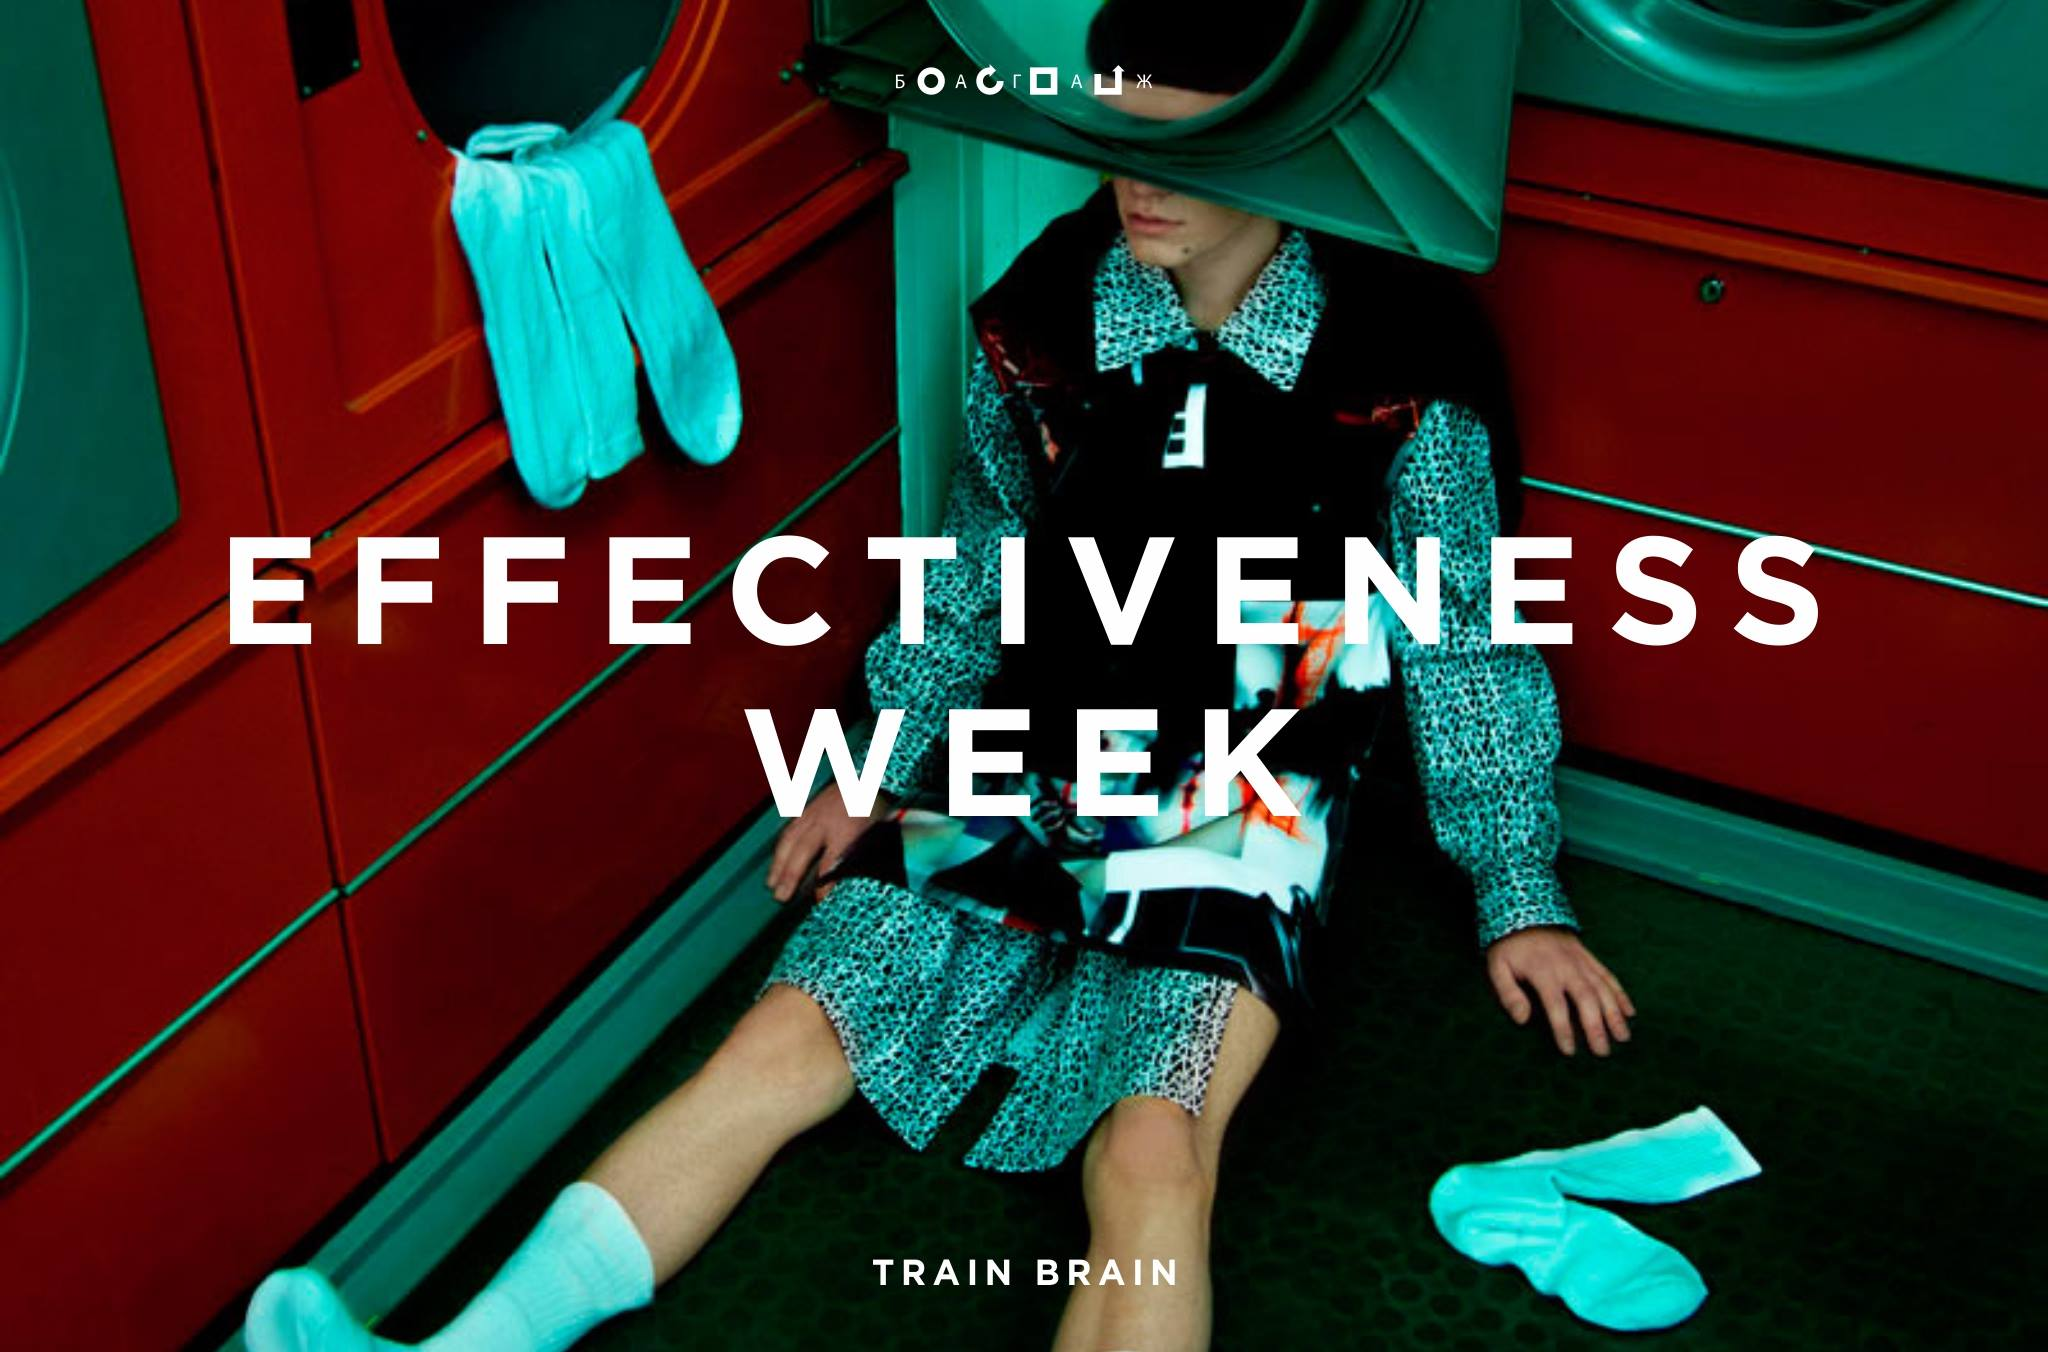 48_october_2017_EFFECTIVENESS WEEK